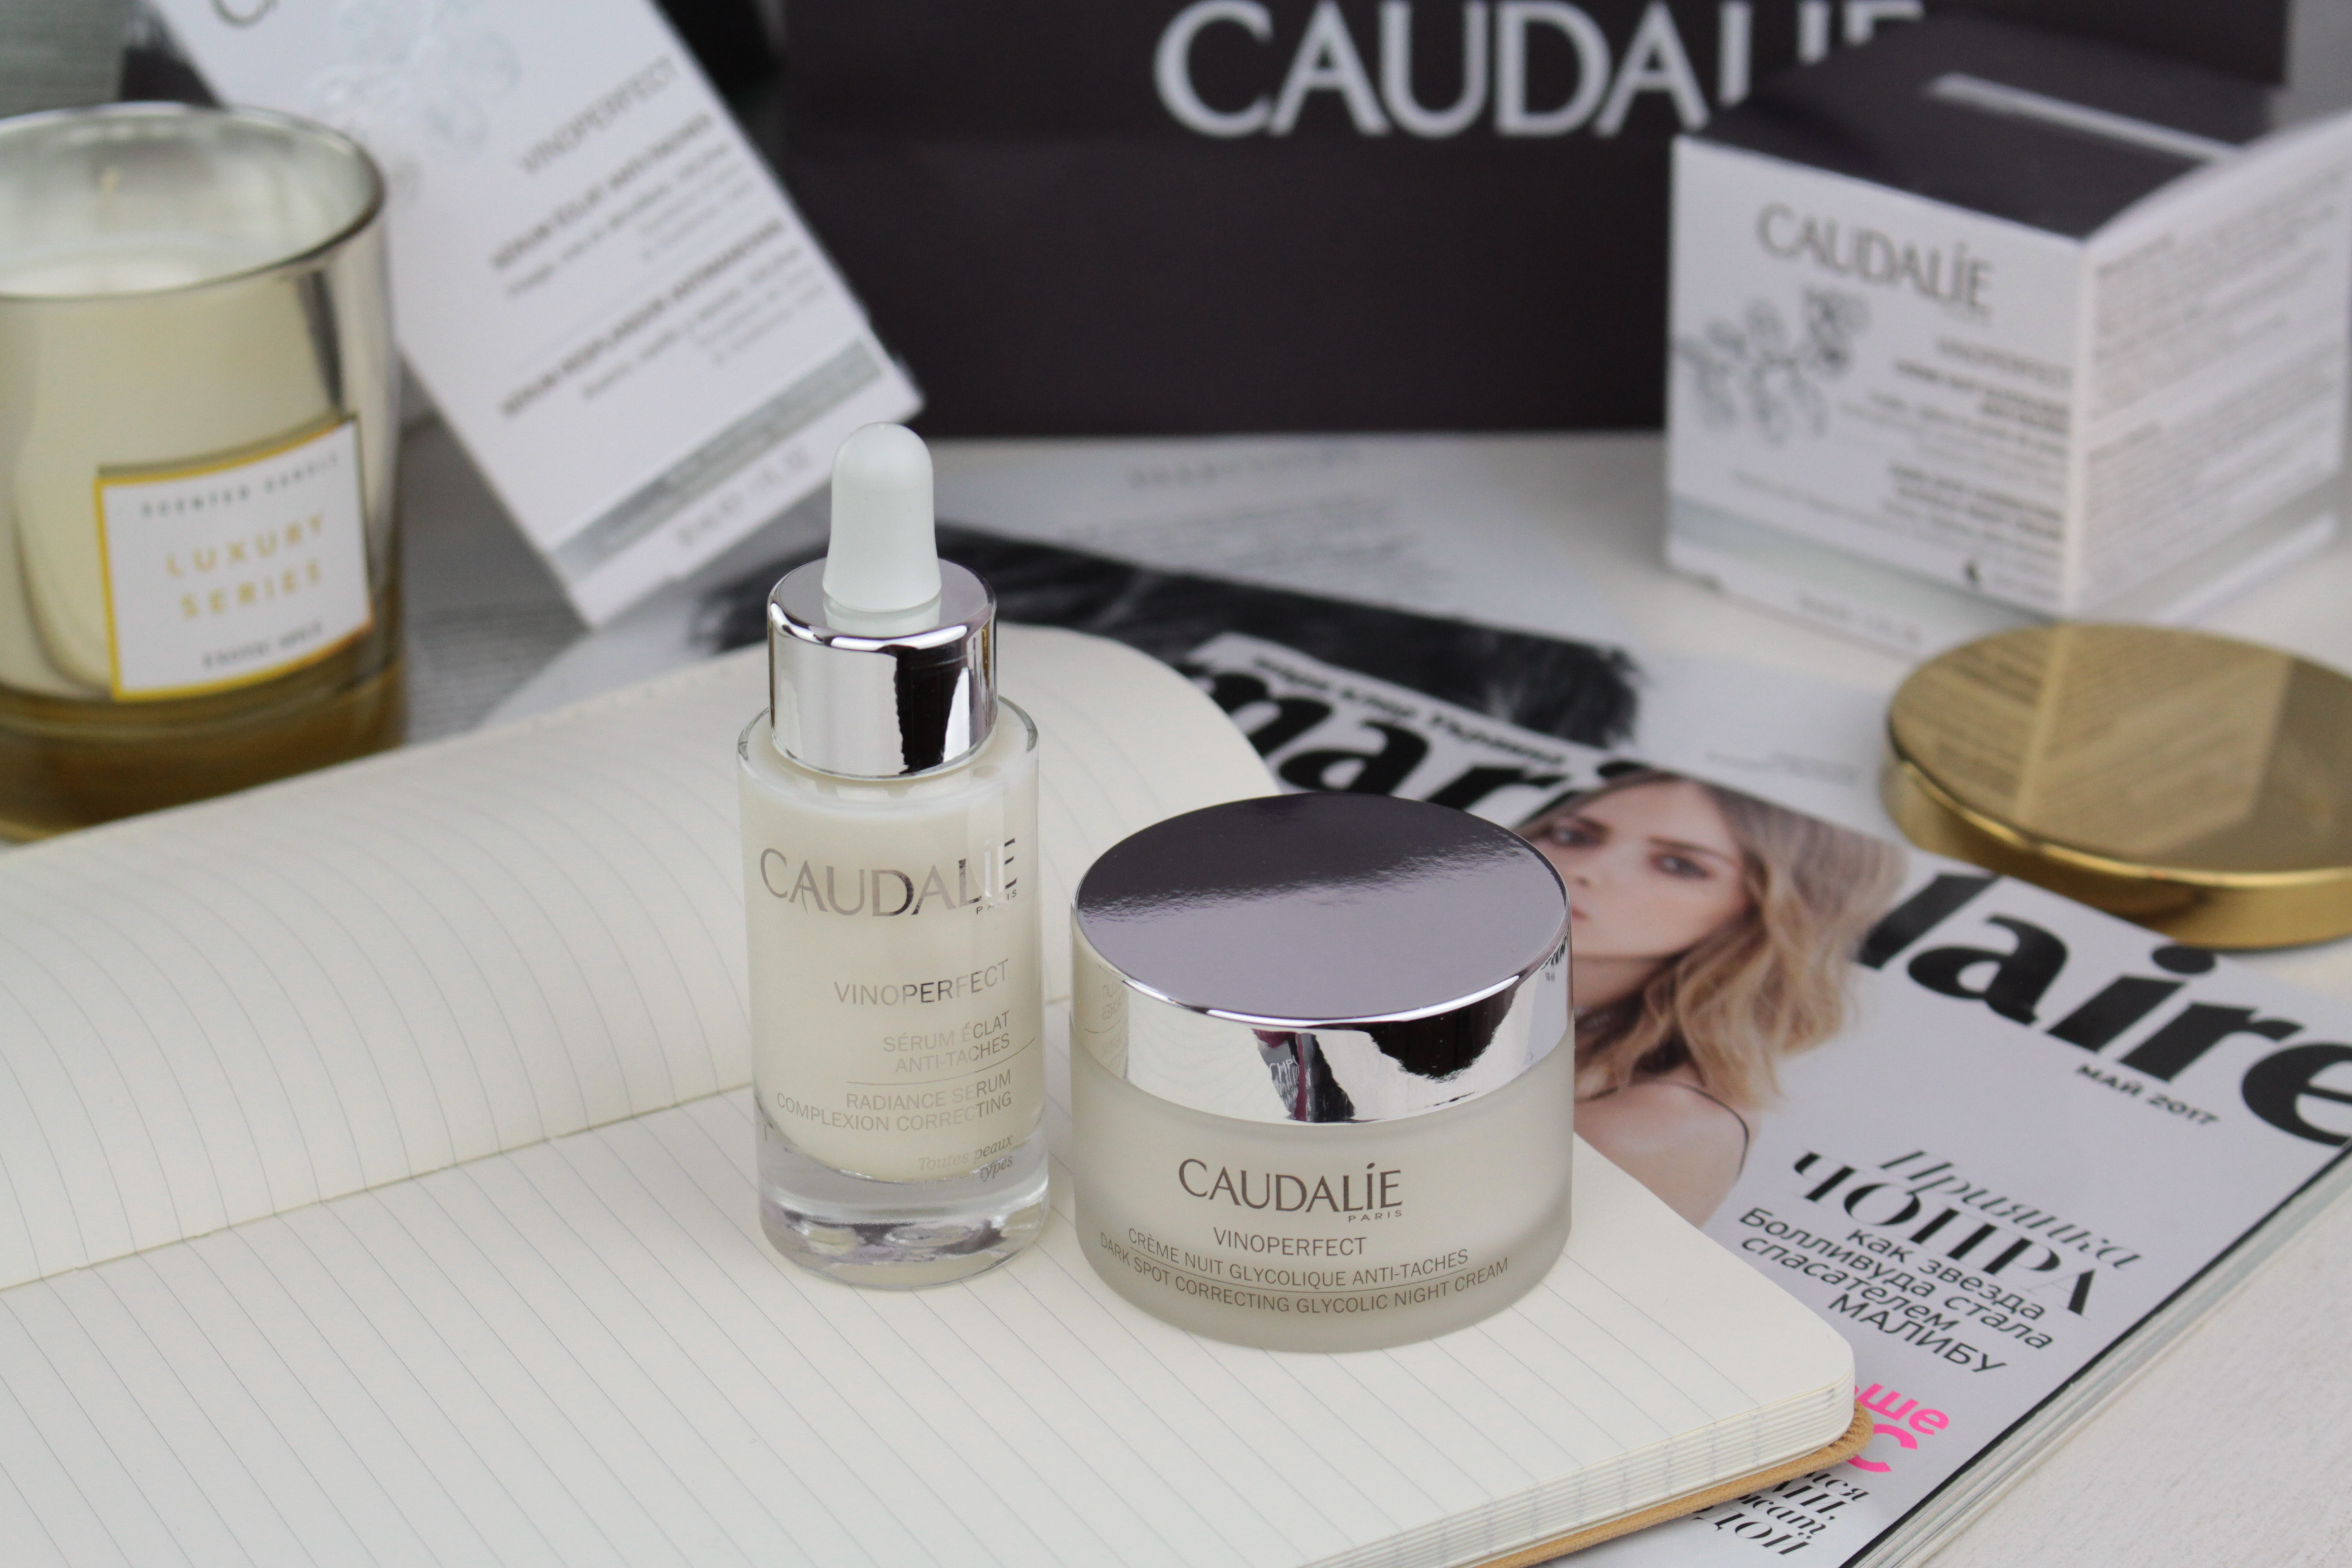 Caudalie Vinoperfect Radiance Serum Complexion Correcting & Dark Spot Correcting Glycolic Night Cream Сыворотка и Ночной Крем